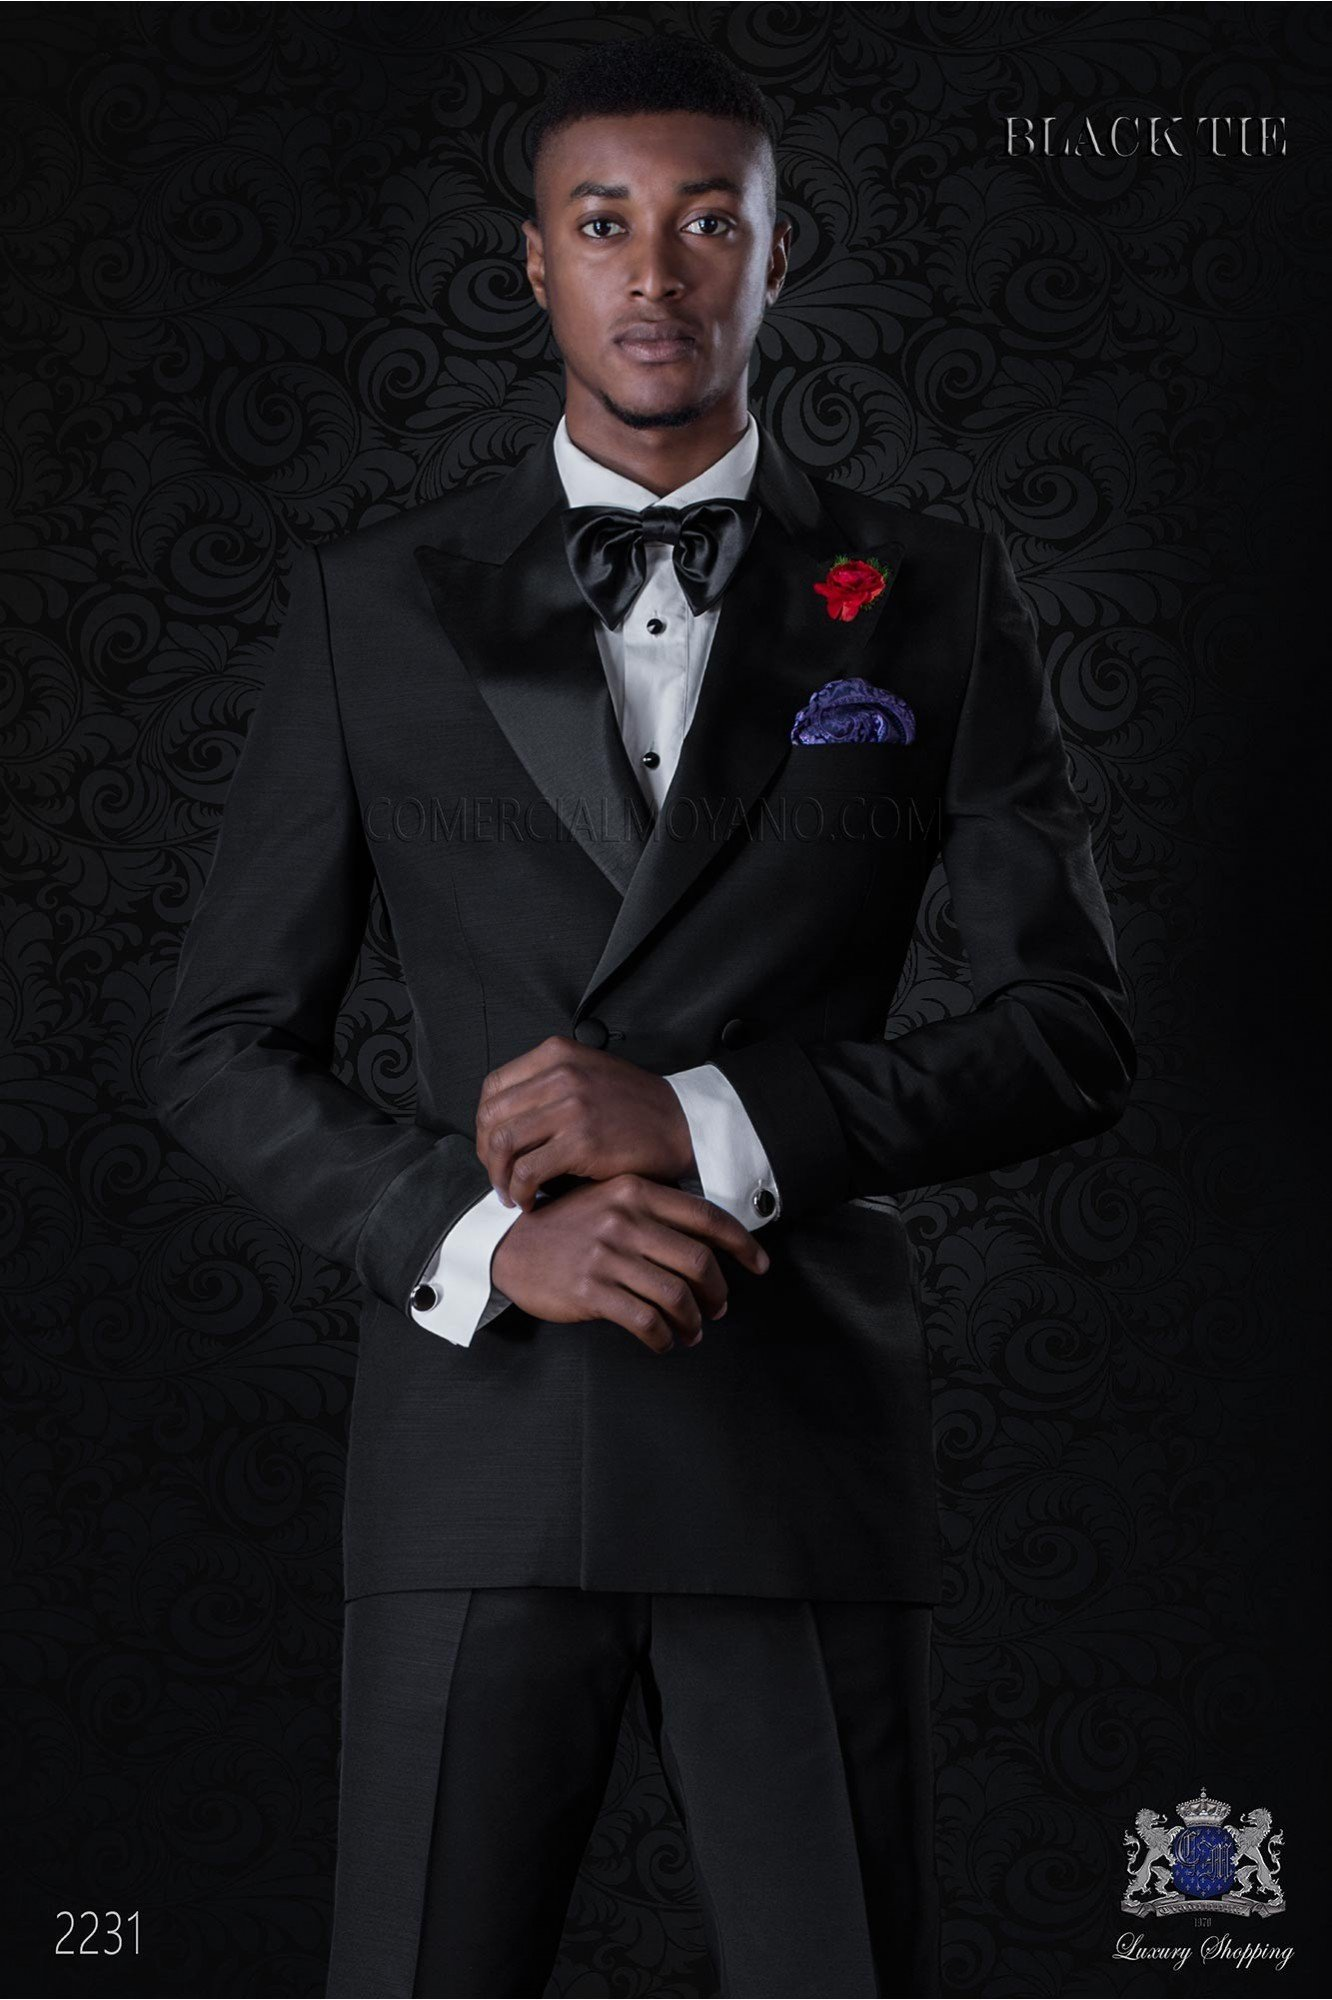 Italian double breasted black tuxedo with peak satin lapels. Peak lapels and 4 buttons. Wool mix fabric